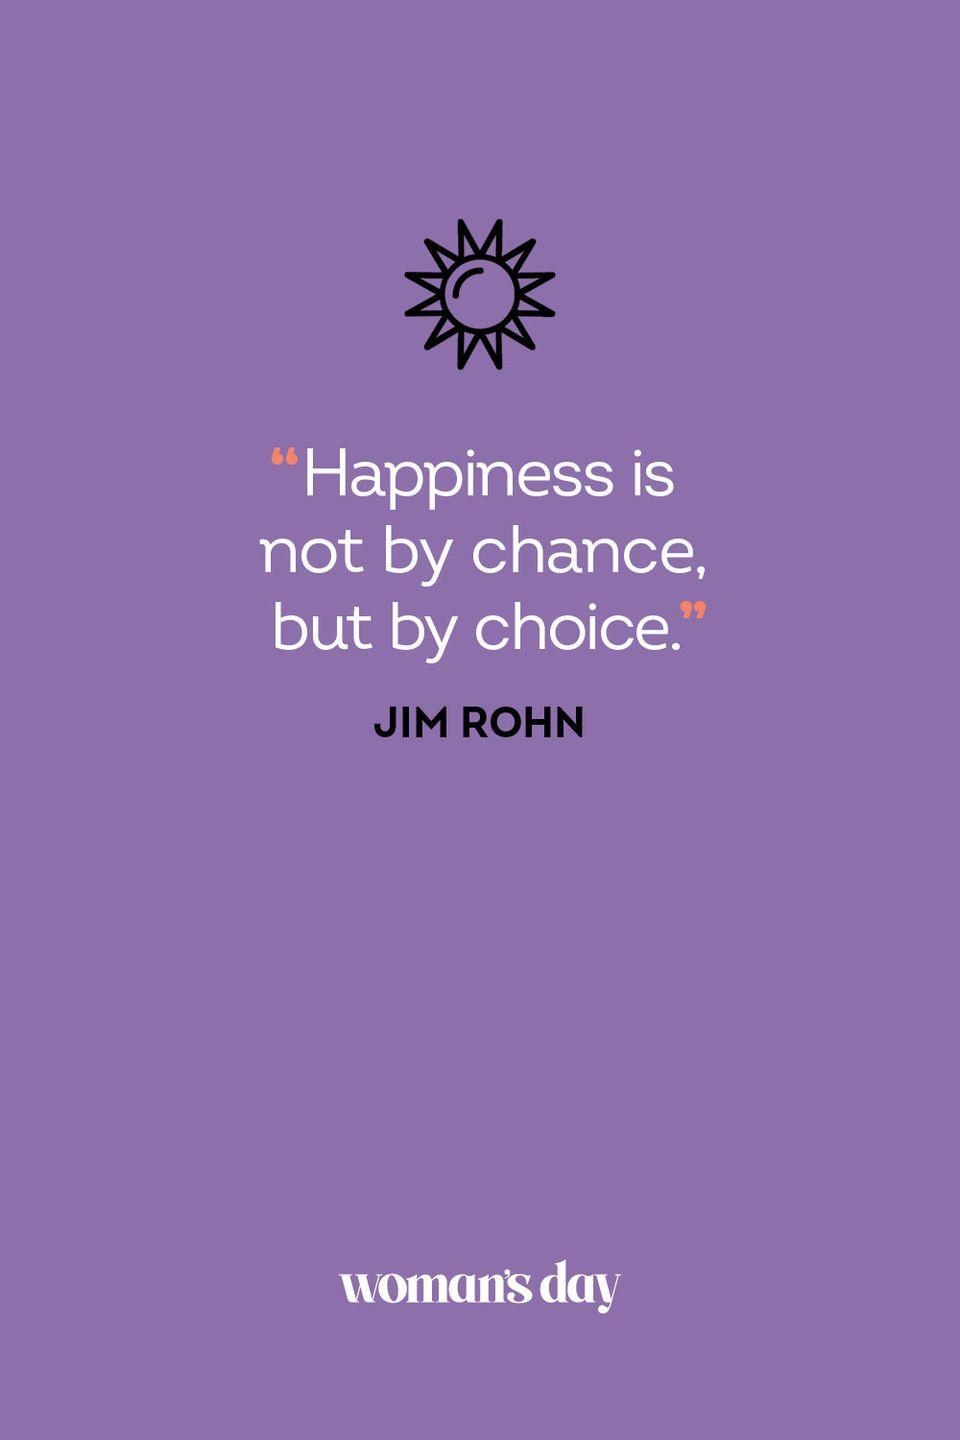 <p>Happiness is not by chance but by choice. </p>